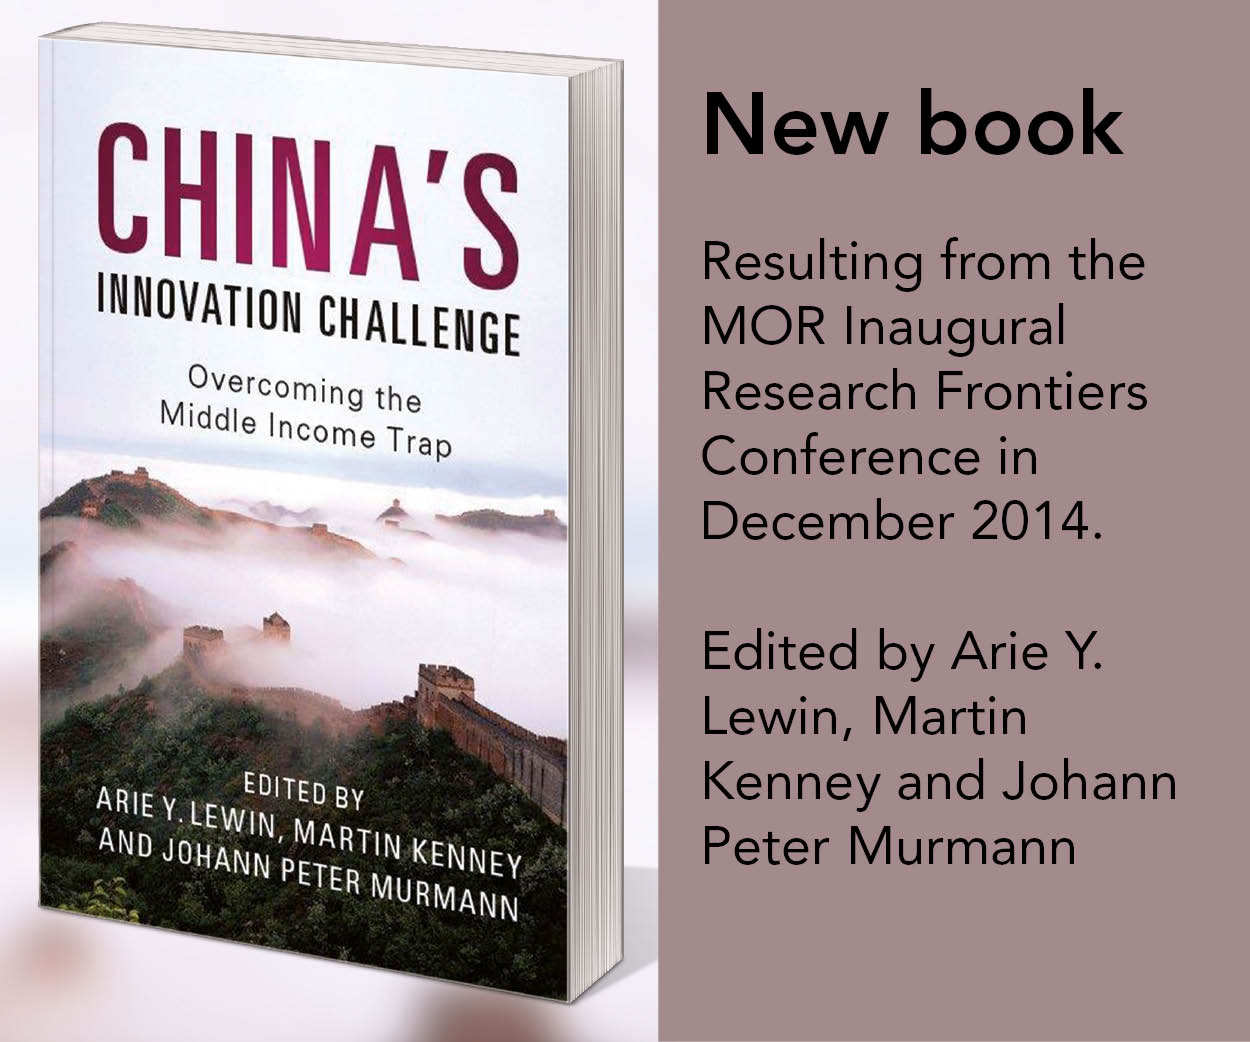 New book: China's Innovation Challenge